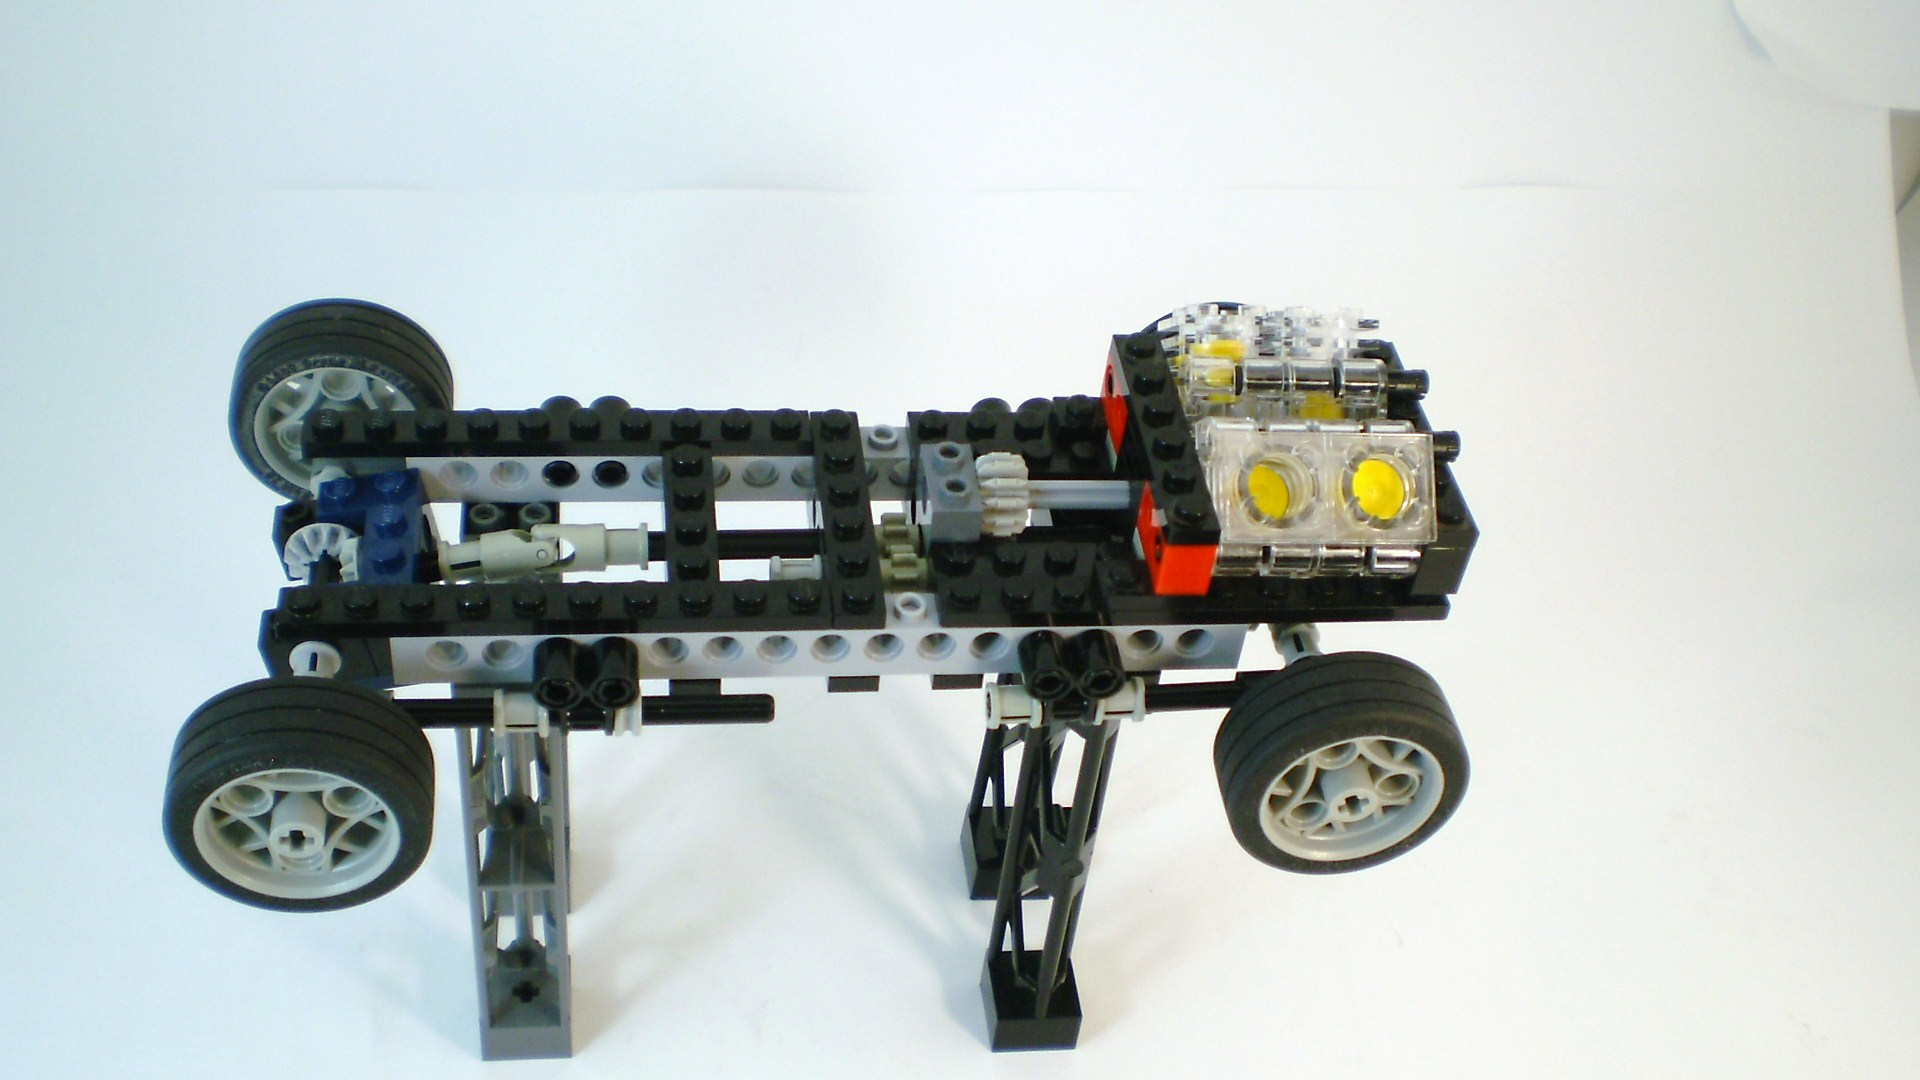 f-series_2009_engine_and_chassis_15.jpg